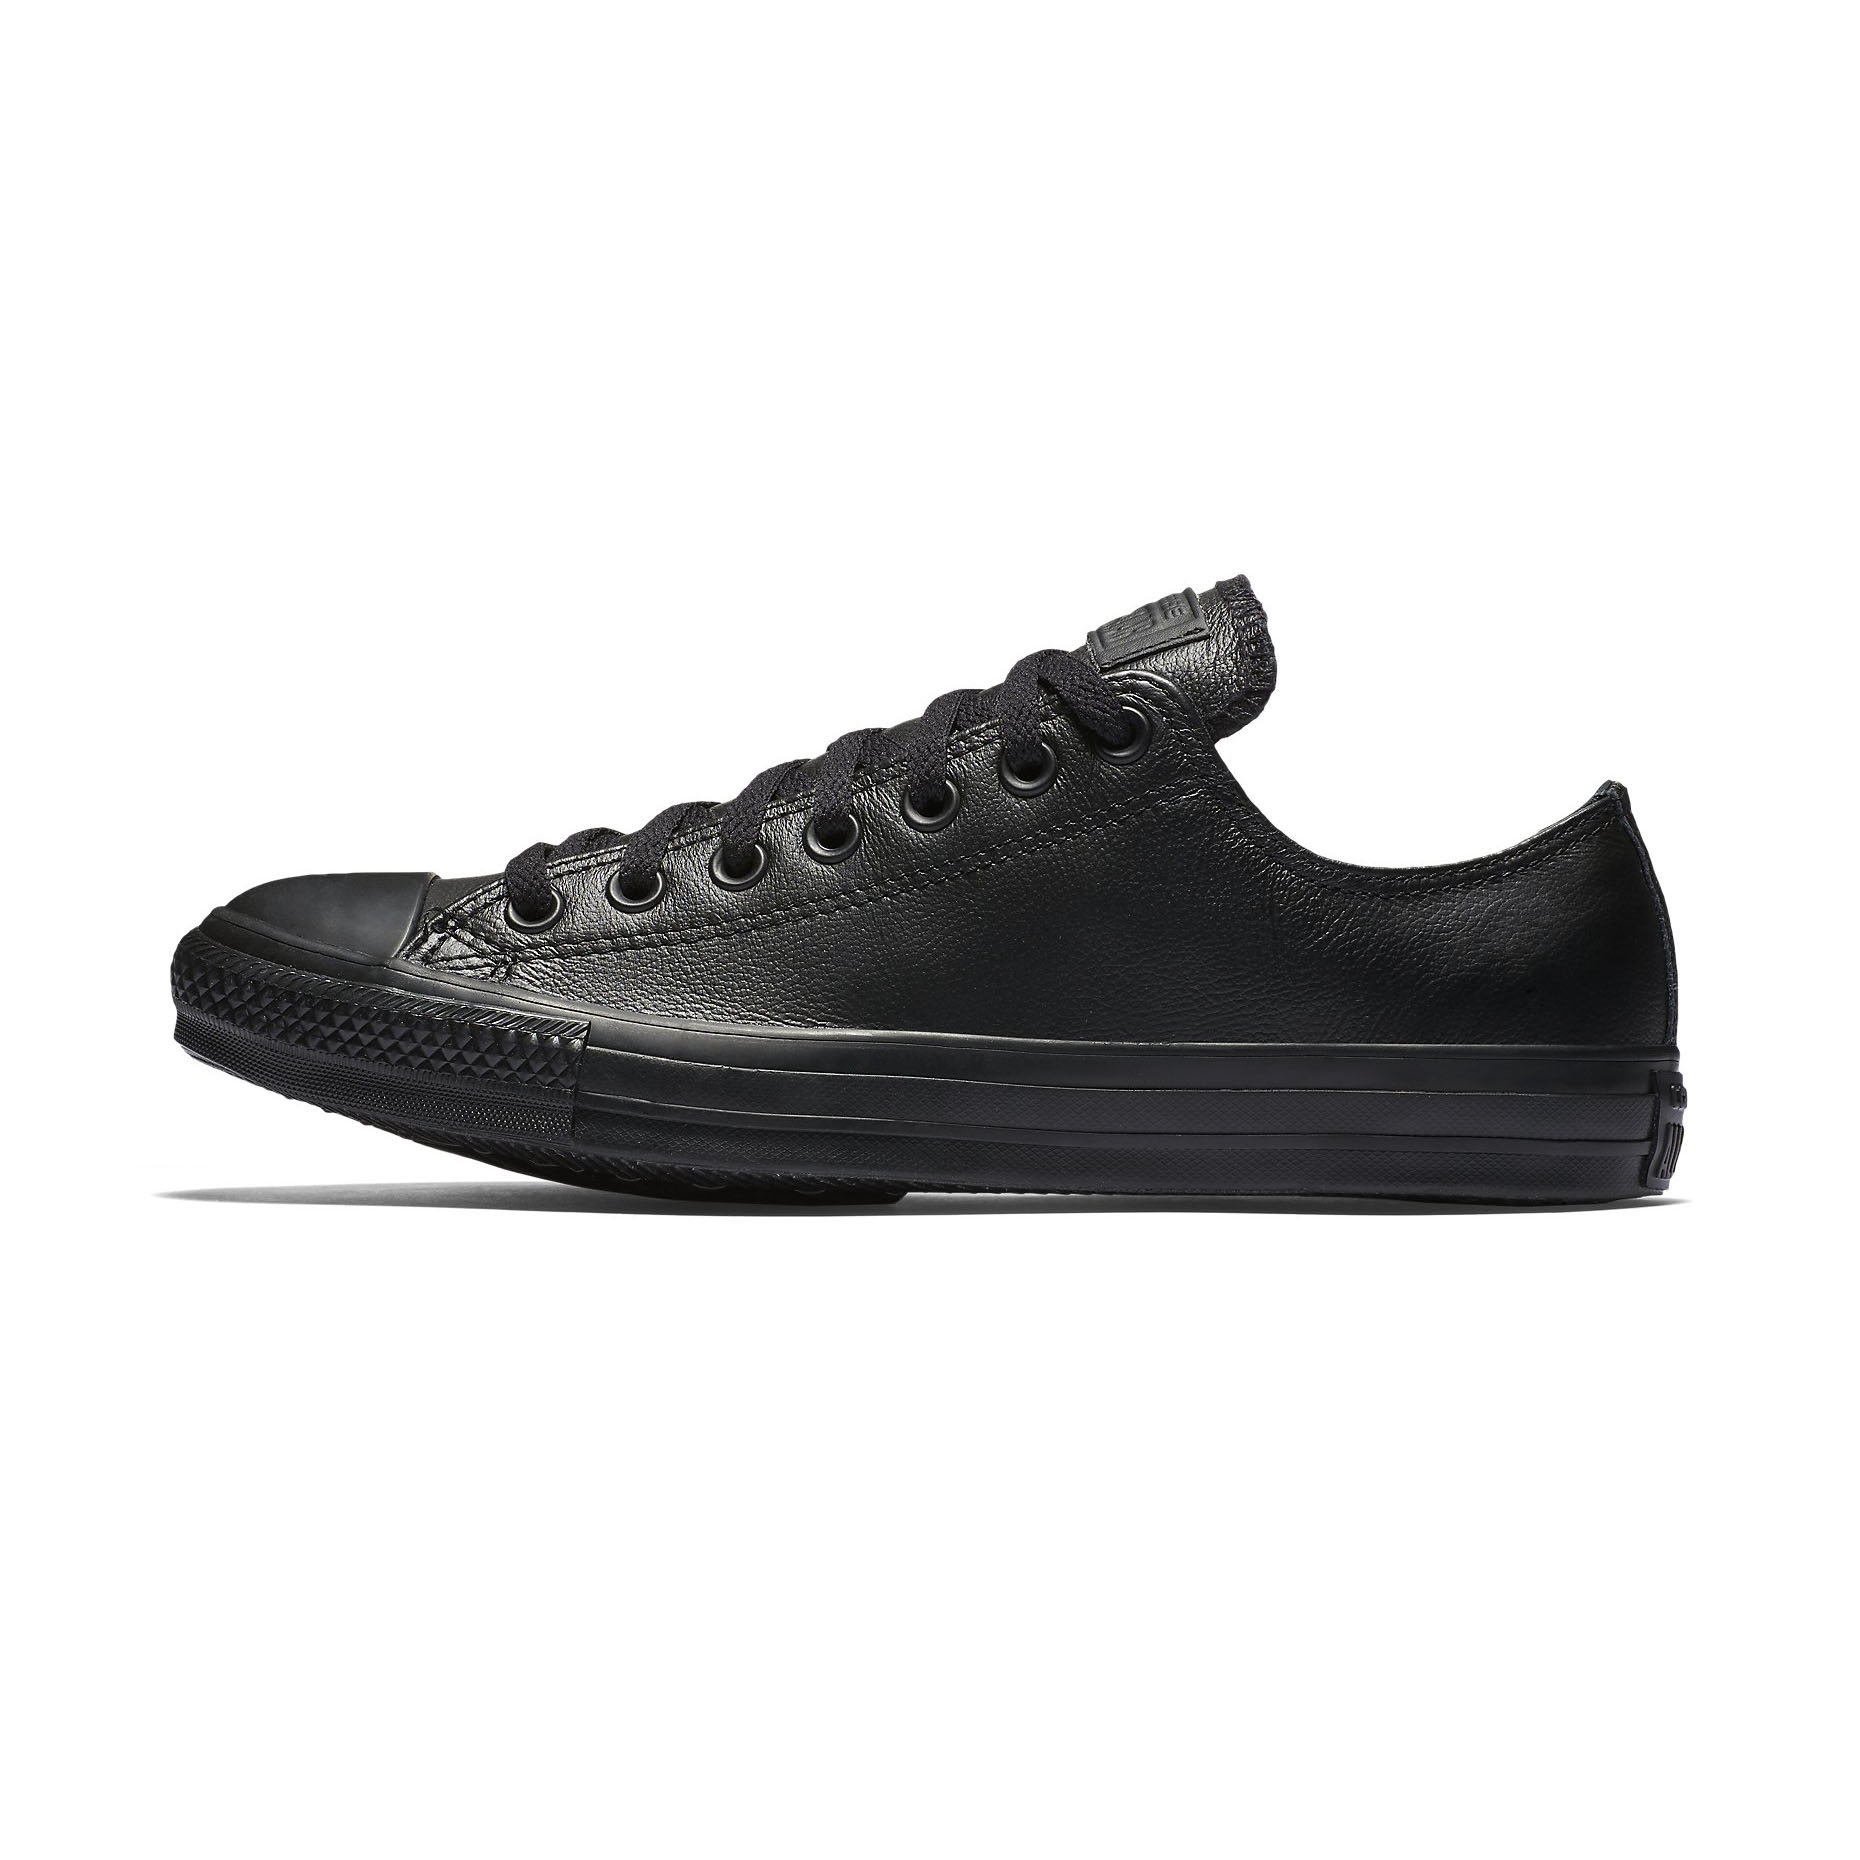 New Converse Chuck Taylor All Star Low Top Sneakers 135253C Leather ... 035d2ad8a2